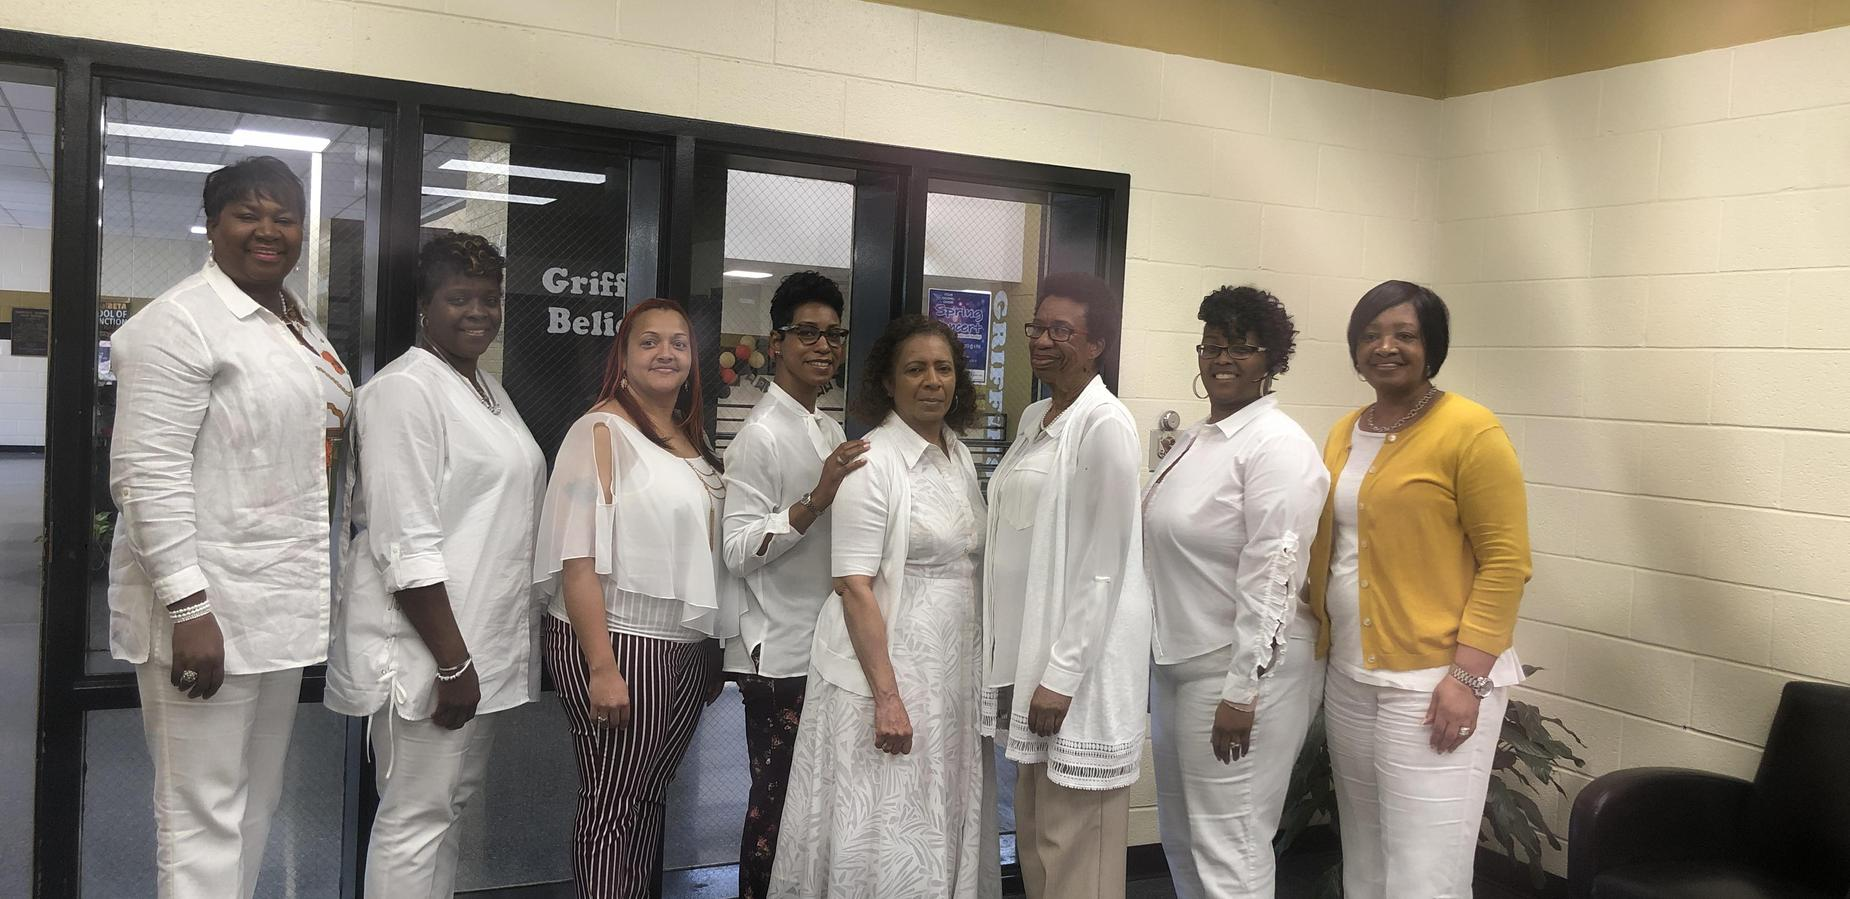 FCHS Admin Professionals in White